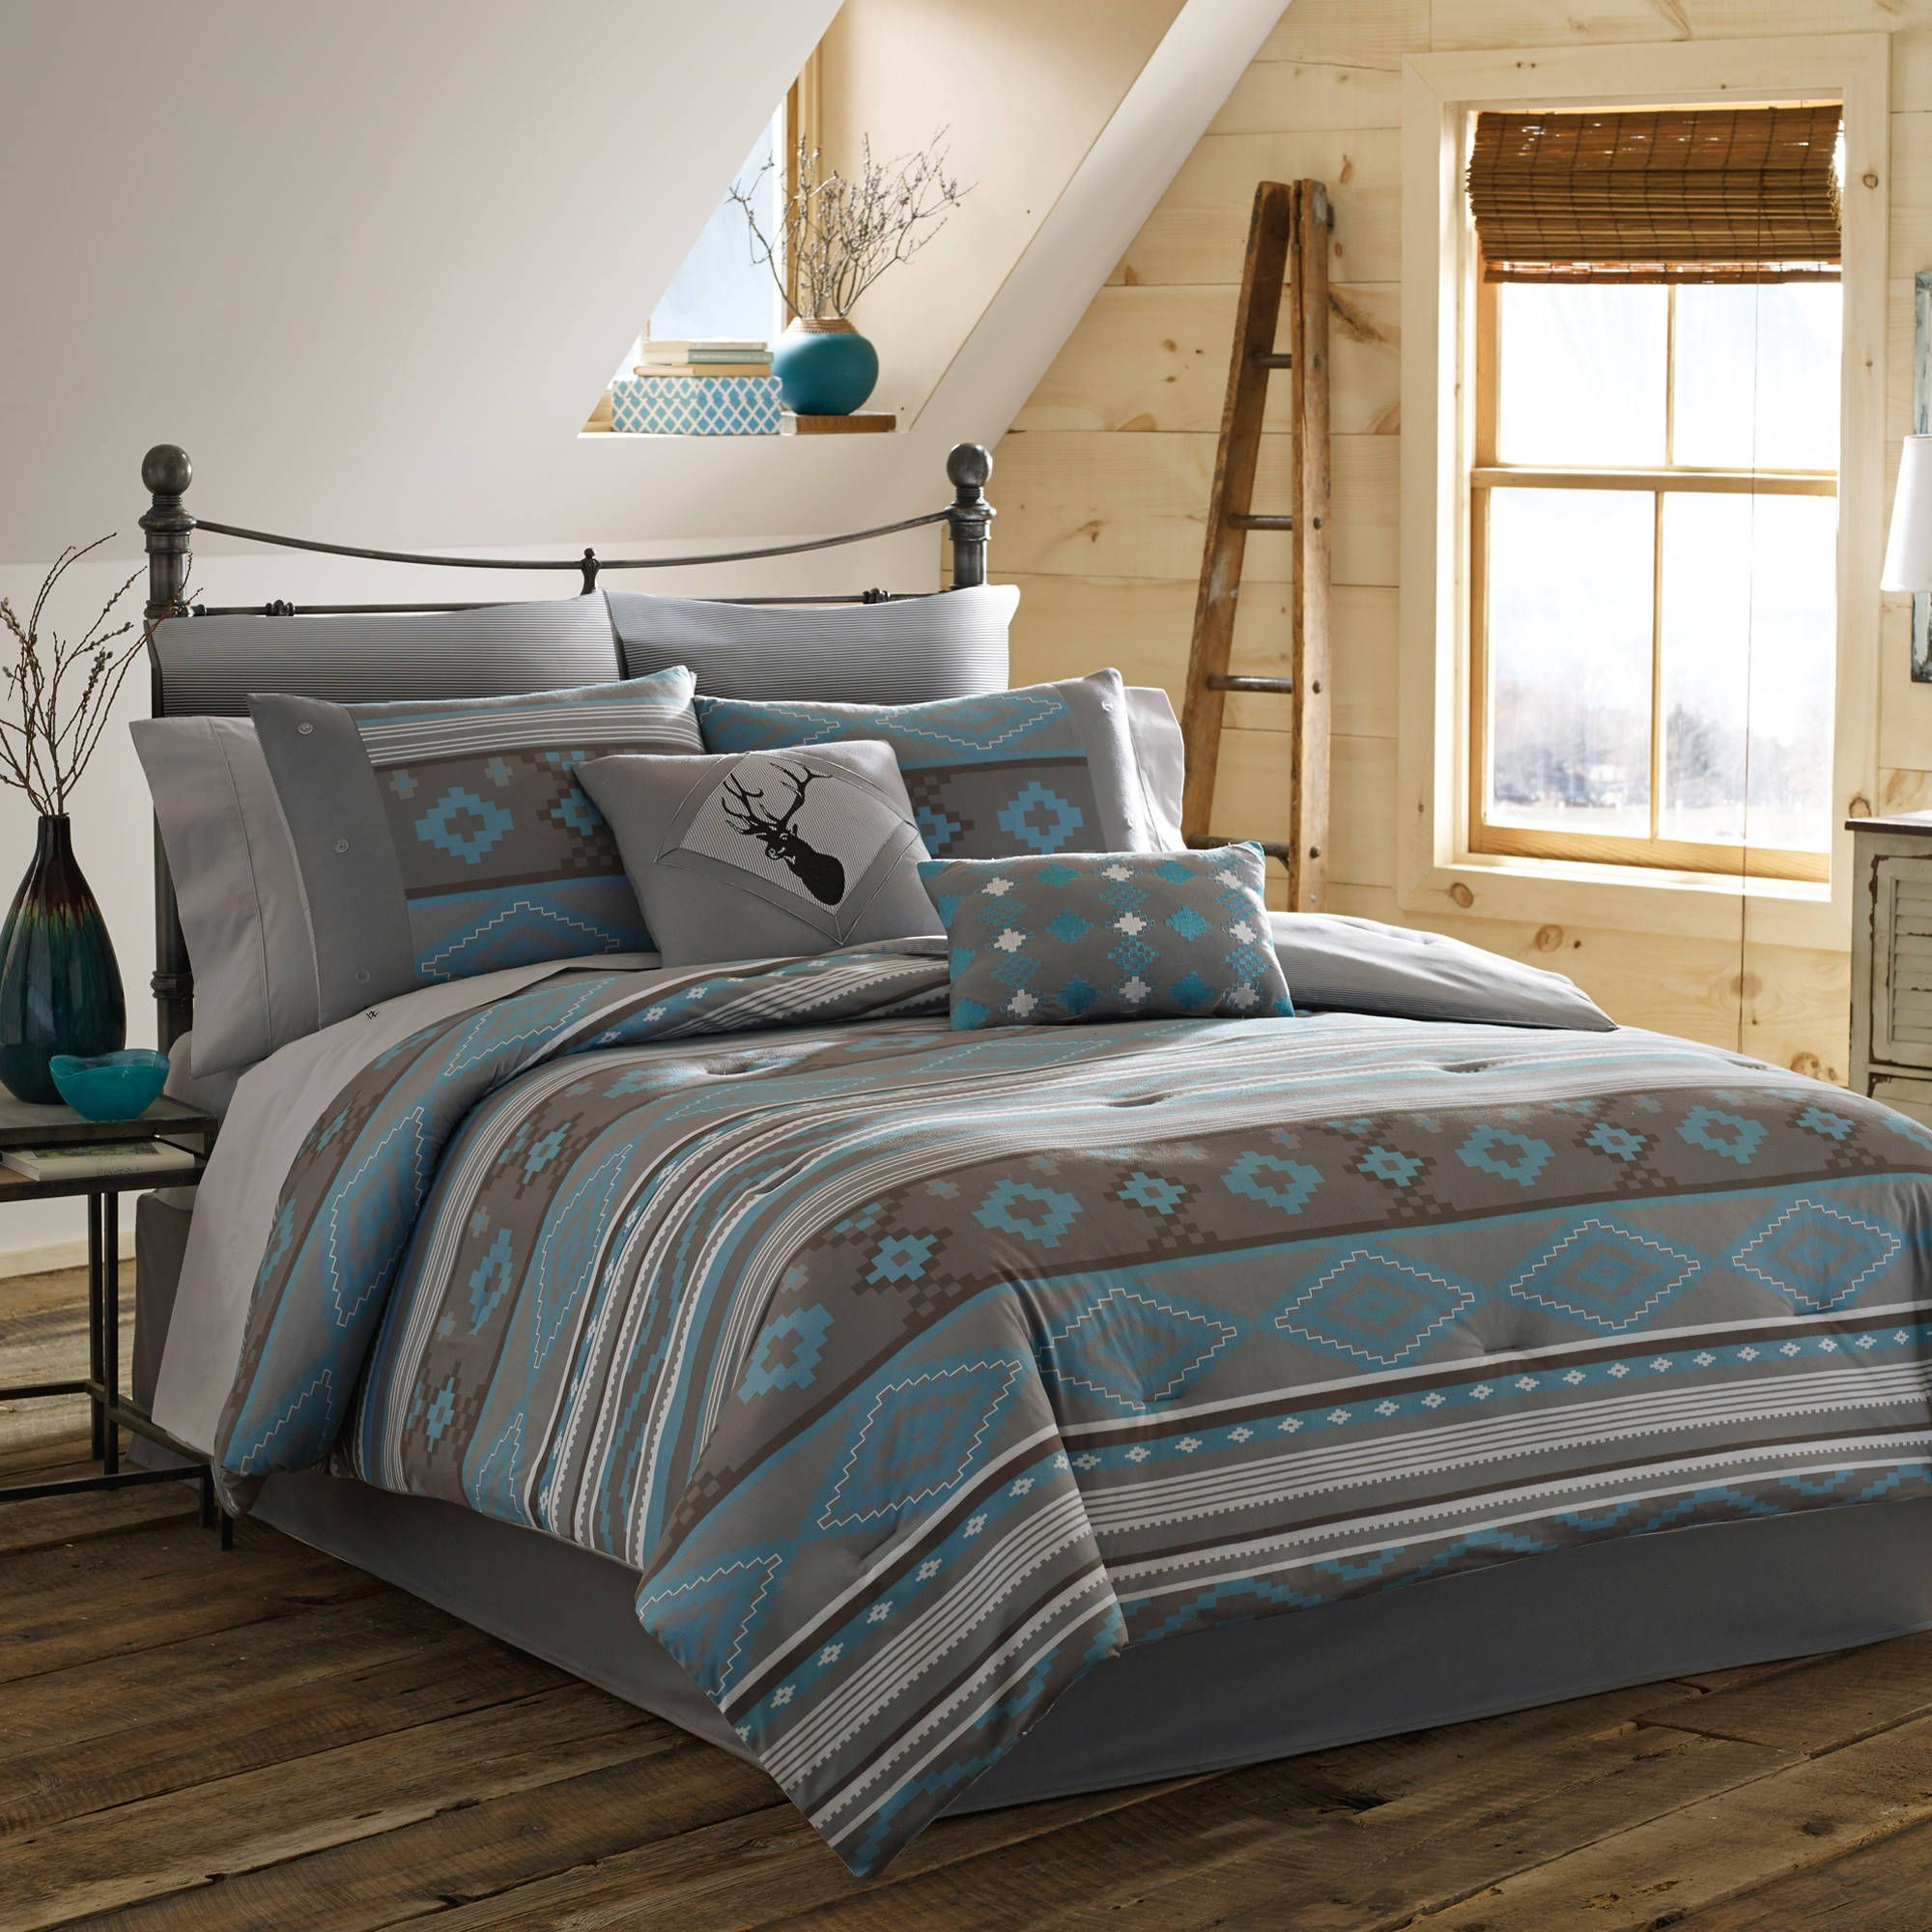 A Welcome Comfort From Teal And Gray Bedding With Images